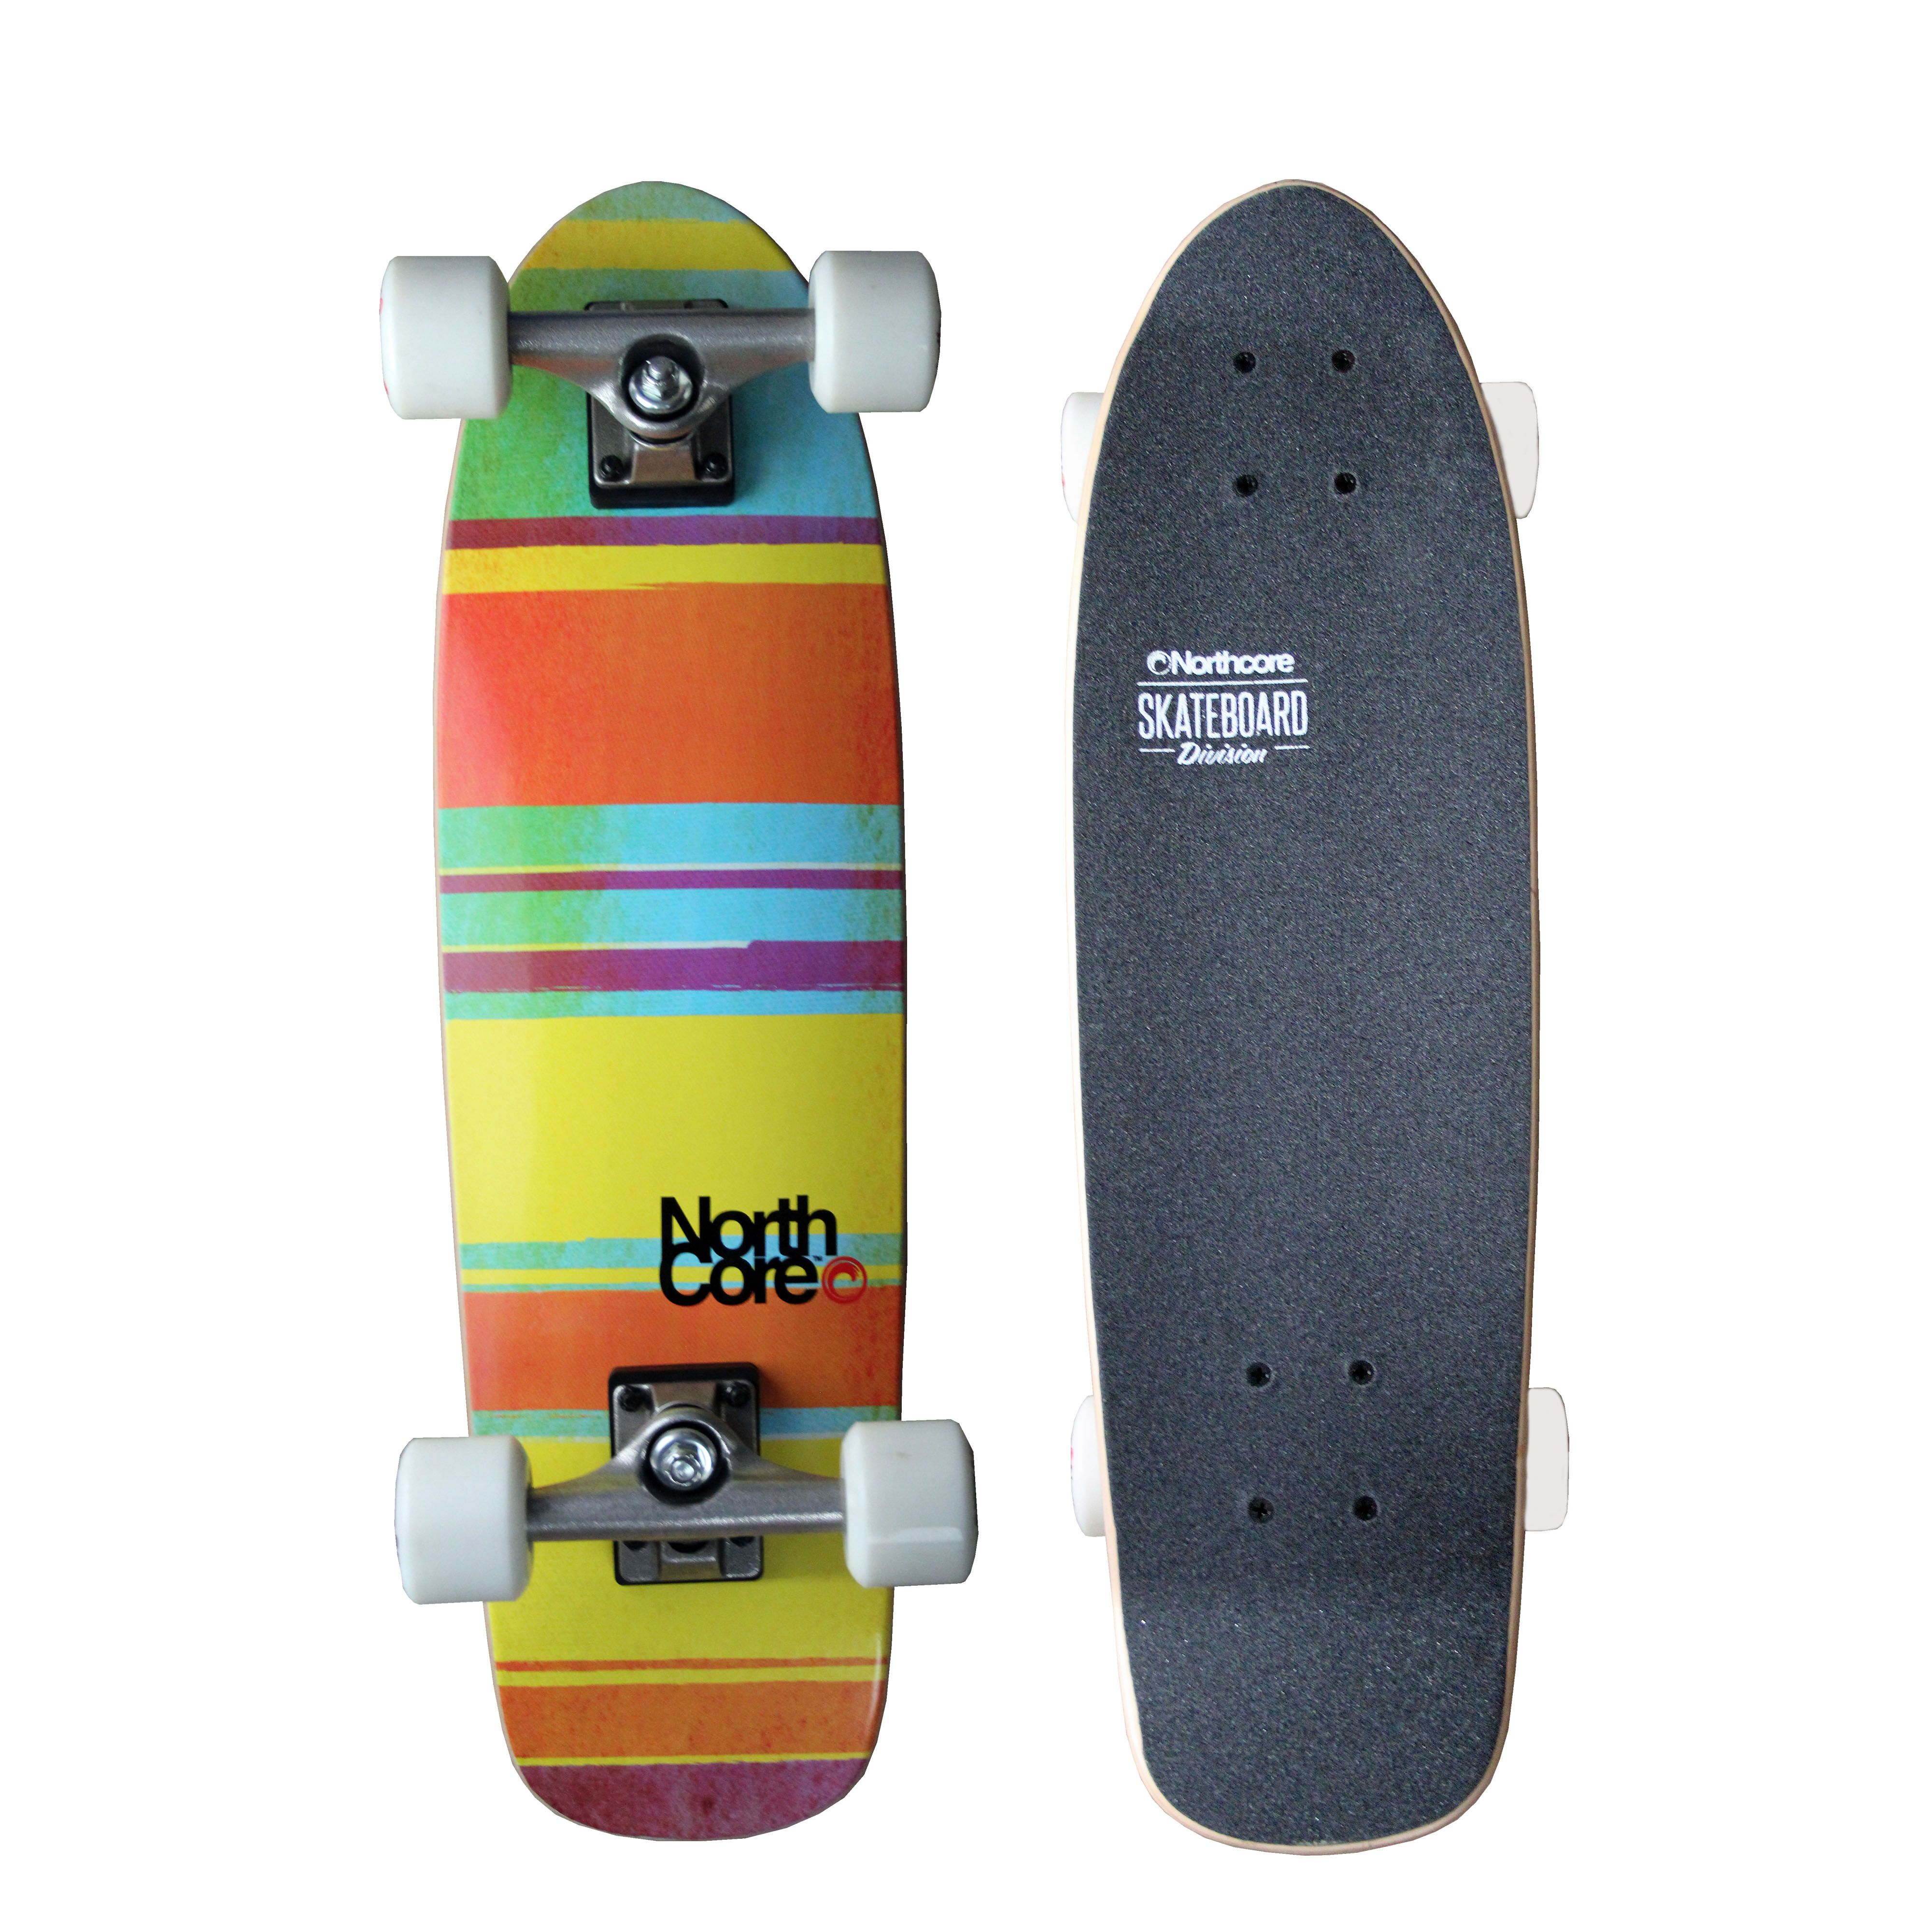 The 26 5 Candy Bar Is The Baby Board In Our New Range Inspired By Penny And Retro Skateboards It S A Favourite With Girls A Skate Park Rip It Up Skateboards